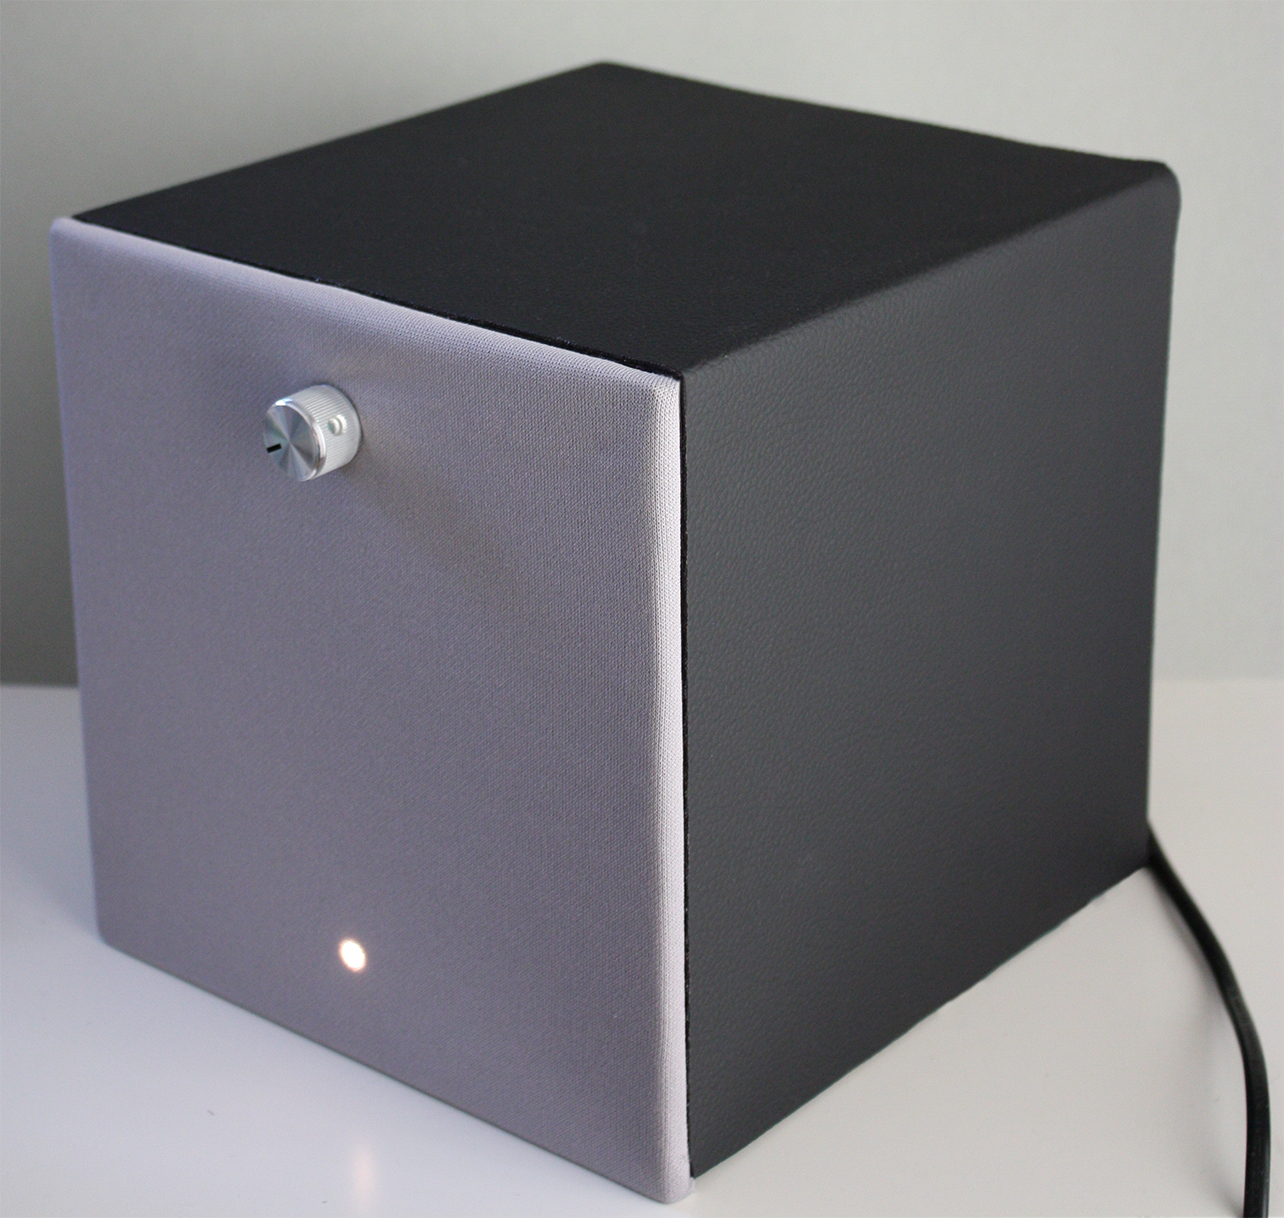 raspbAIRy - the RaspberryPi-based Airplay speaker